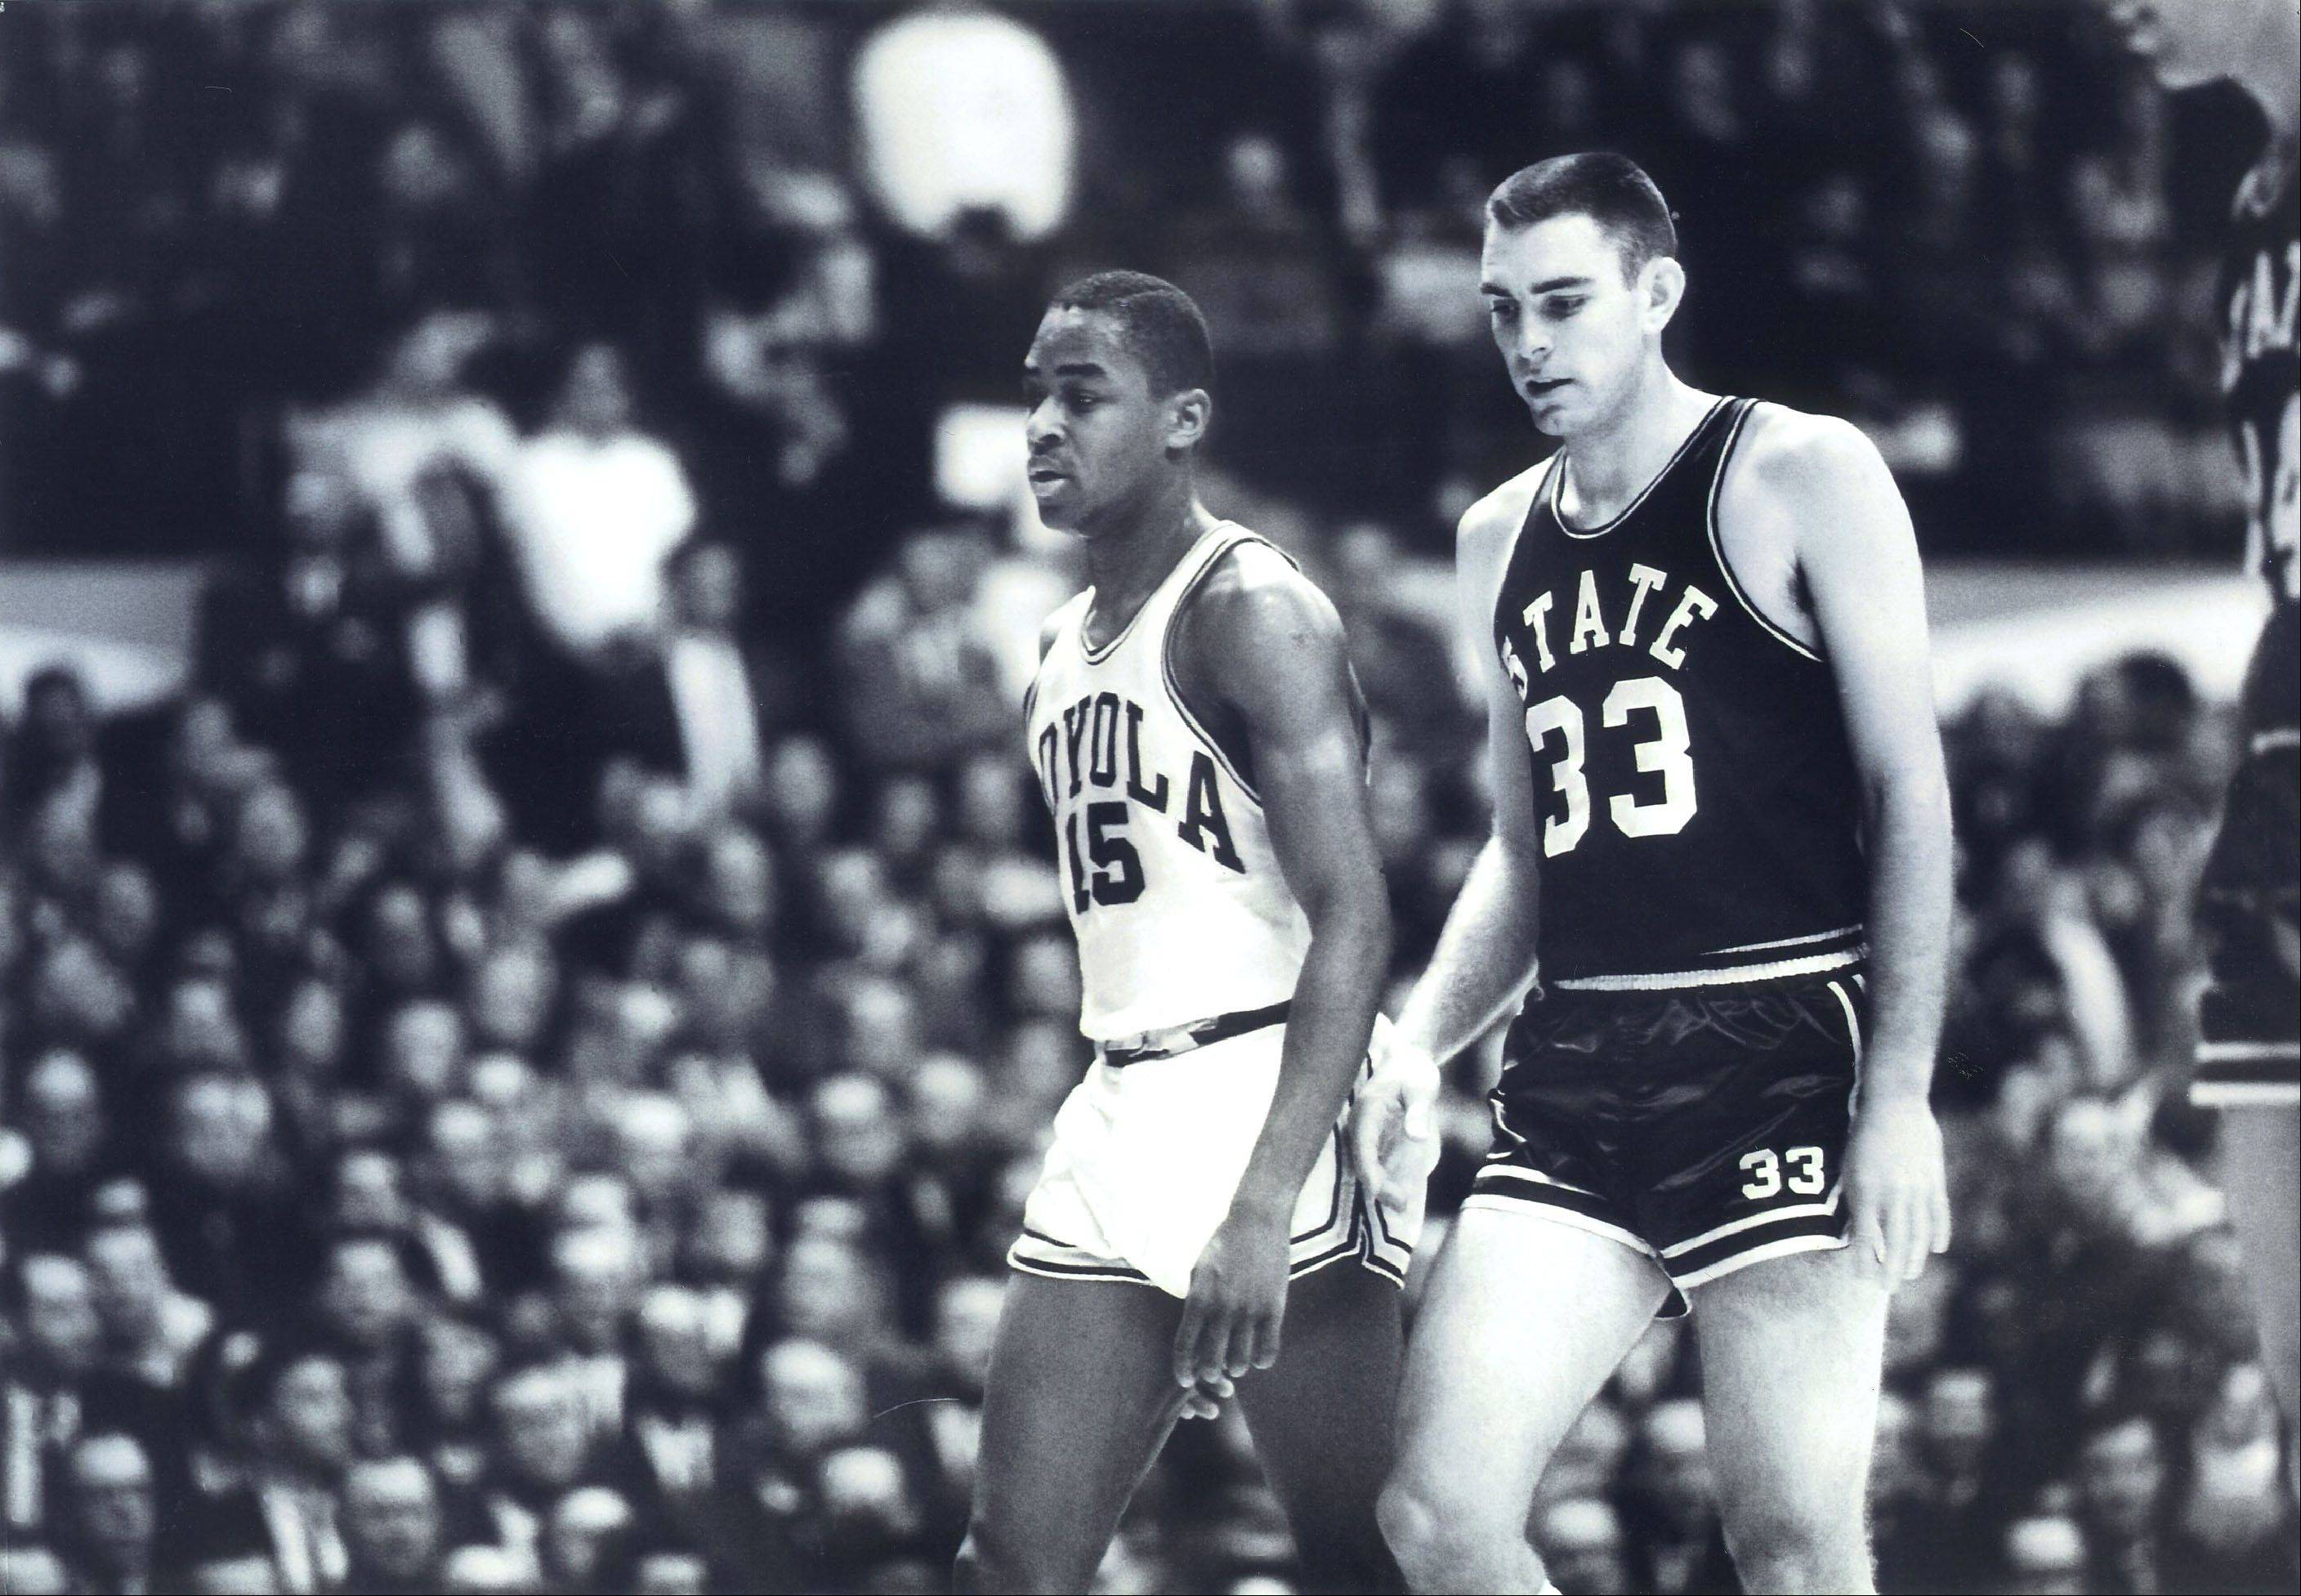 Captains Jerry Harkness of Loyola and Joe Dan Gold of Mississippi State were the center of attention nearly fifty years ago when their two teams met in a 1963 NCAA regional game in East Lansing, Mich. It was the first time a Mississippi State team had played against blacks. The 1963 Loyola team is being inducted into the National Collegiate Basketball Hall of Fame in November.